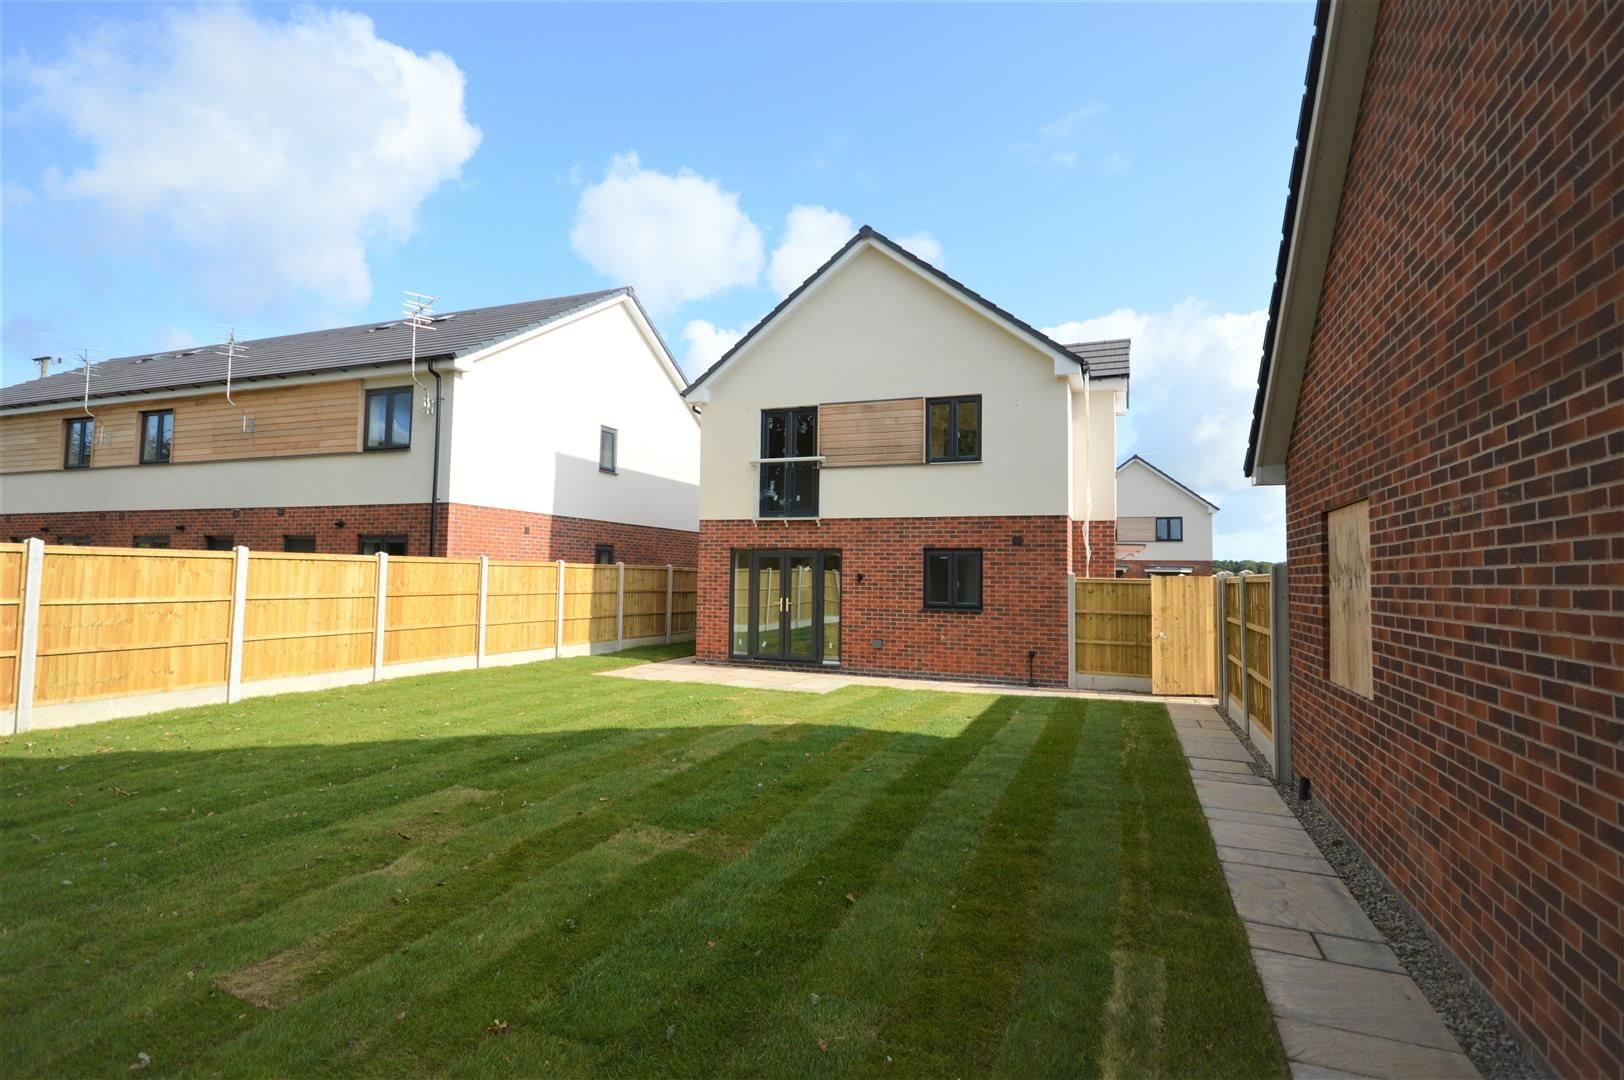 4 bed detached for sale in Kingsland 12